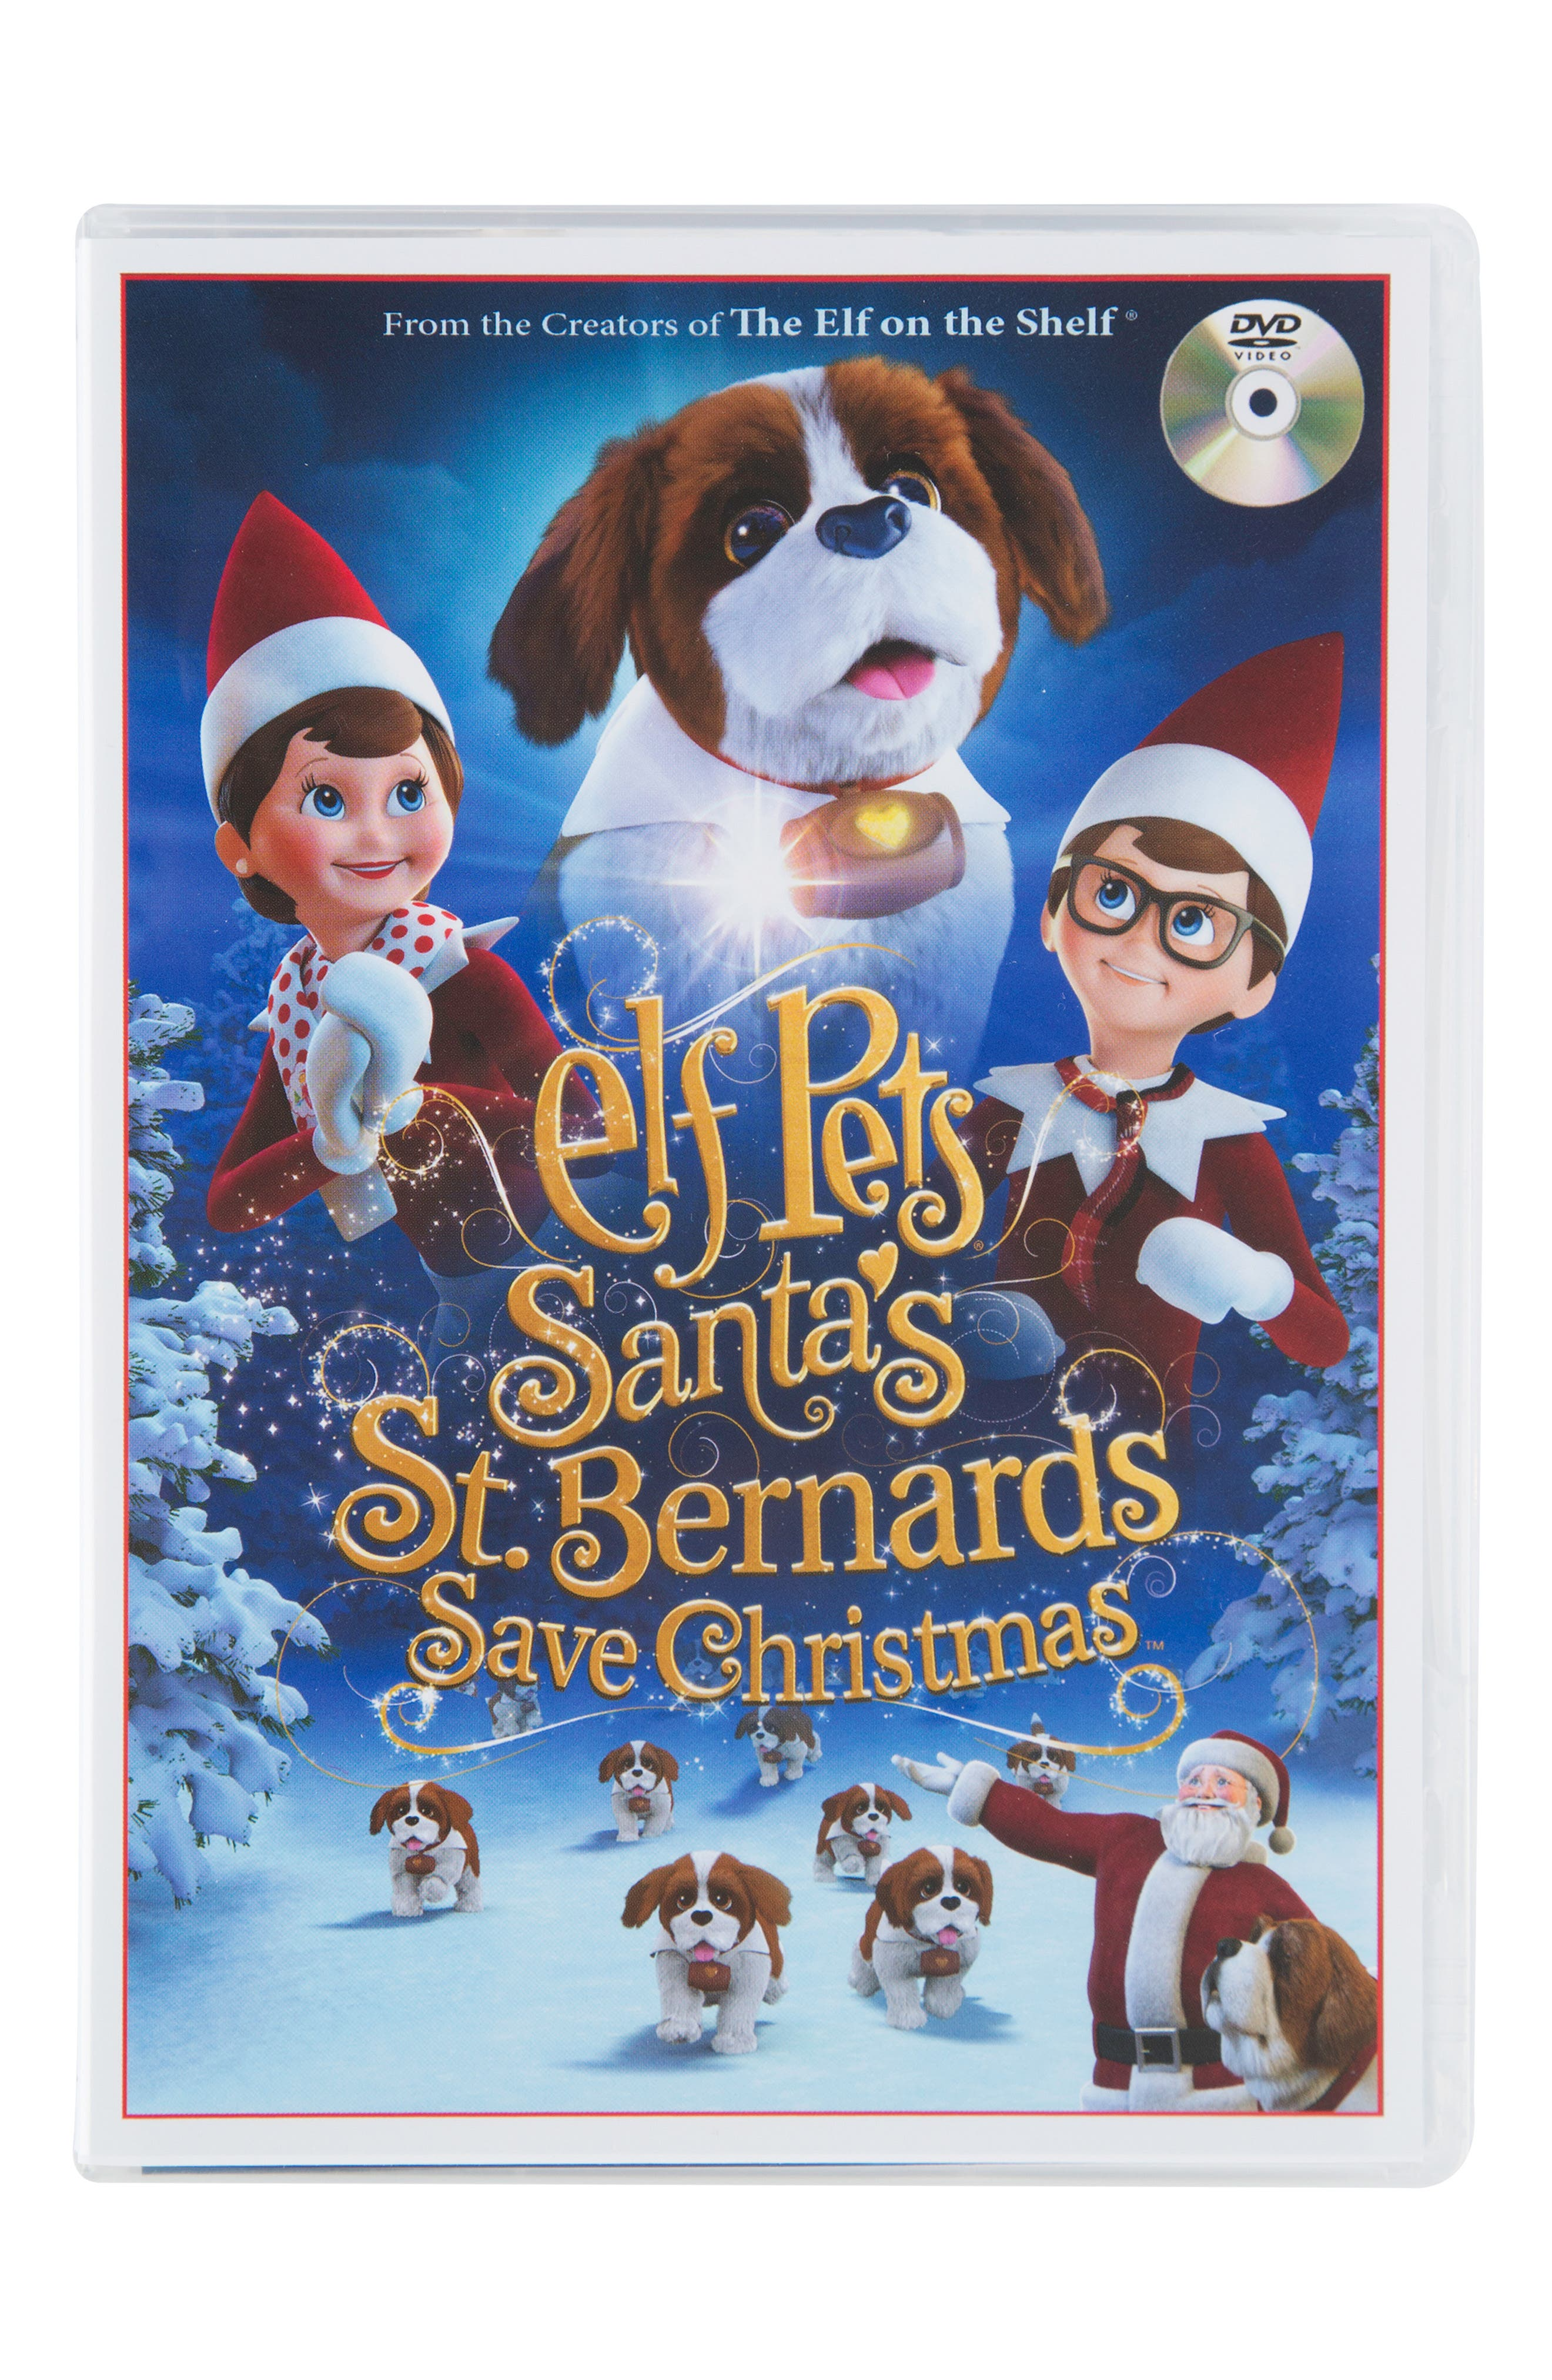 ELF ON THE SHELF 'Elf Pets: Santa's St. Bernards Save Christmas' DVD, Main, color, 960